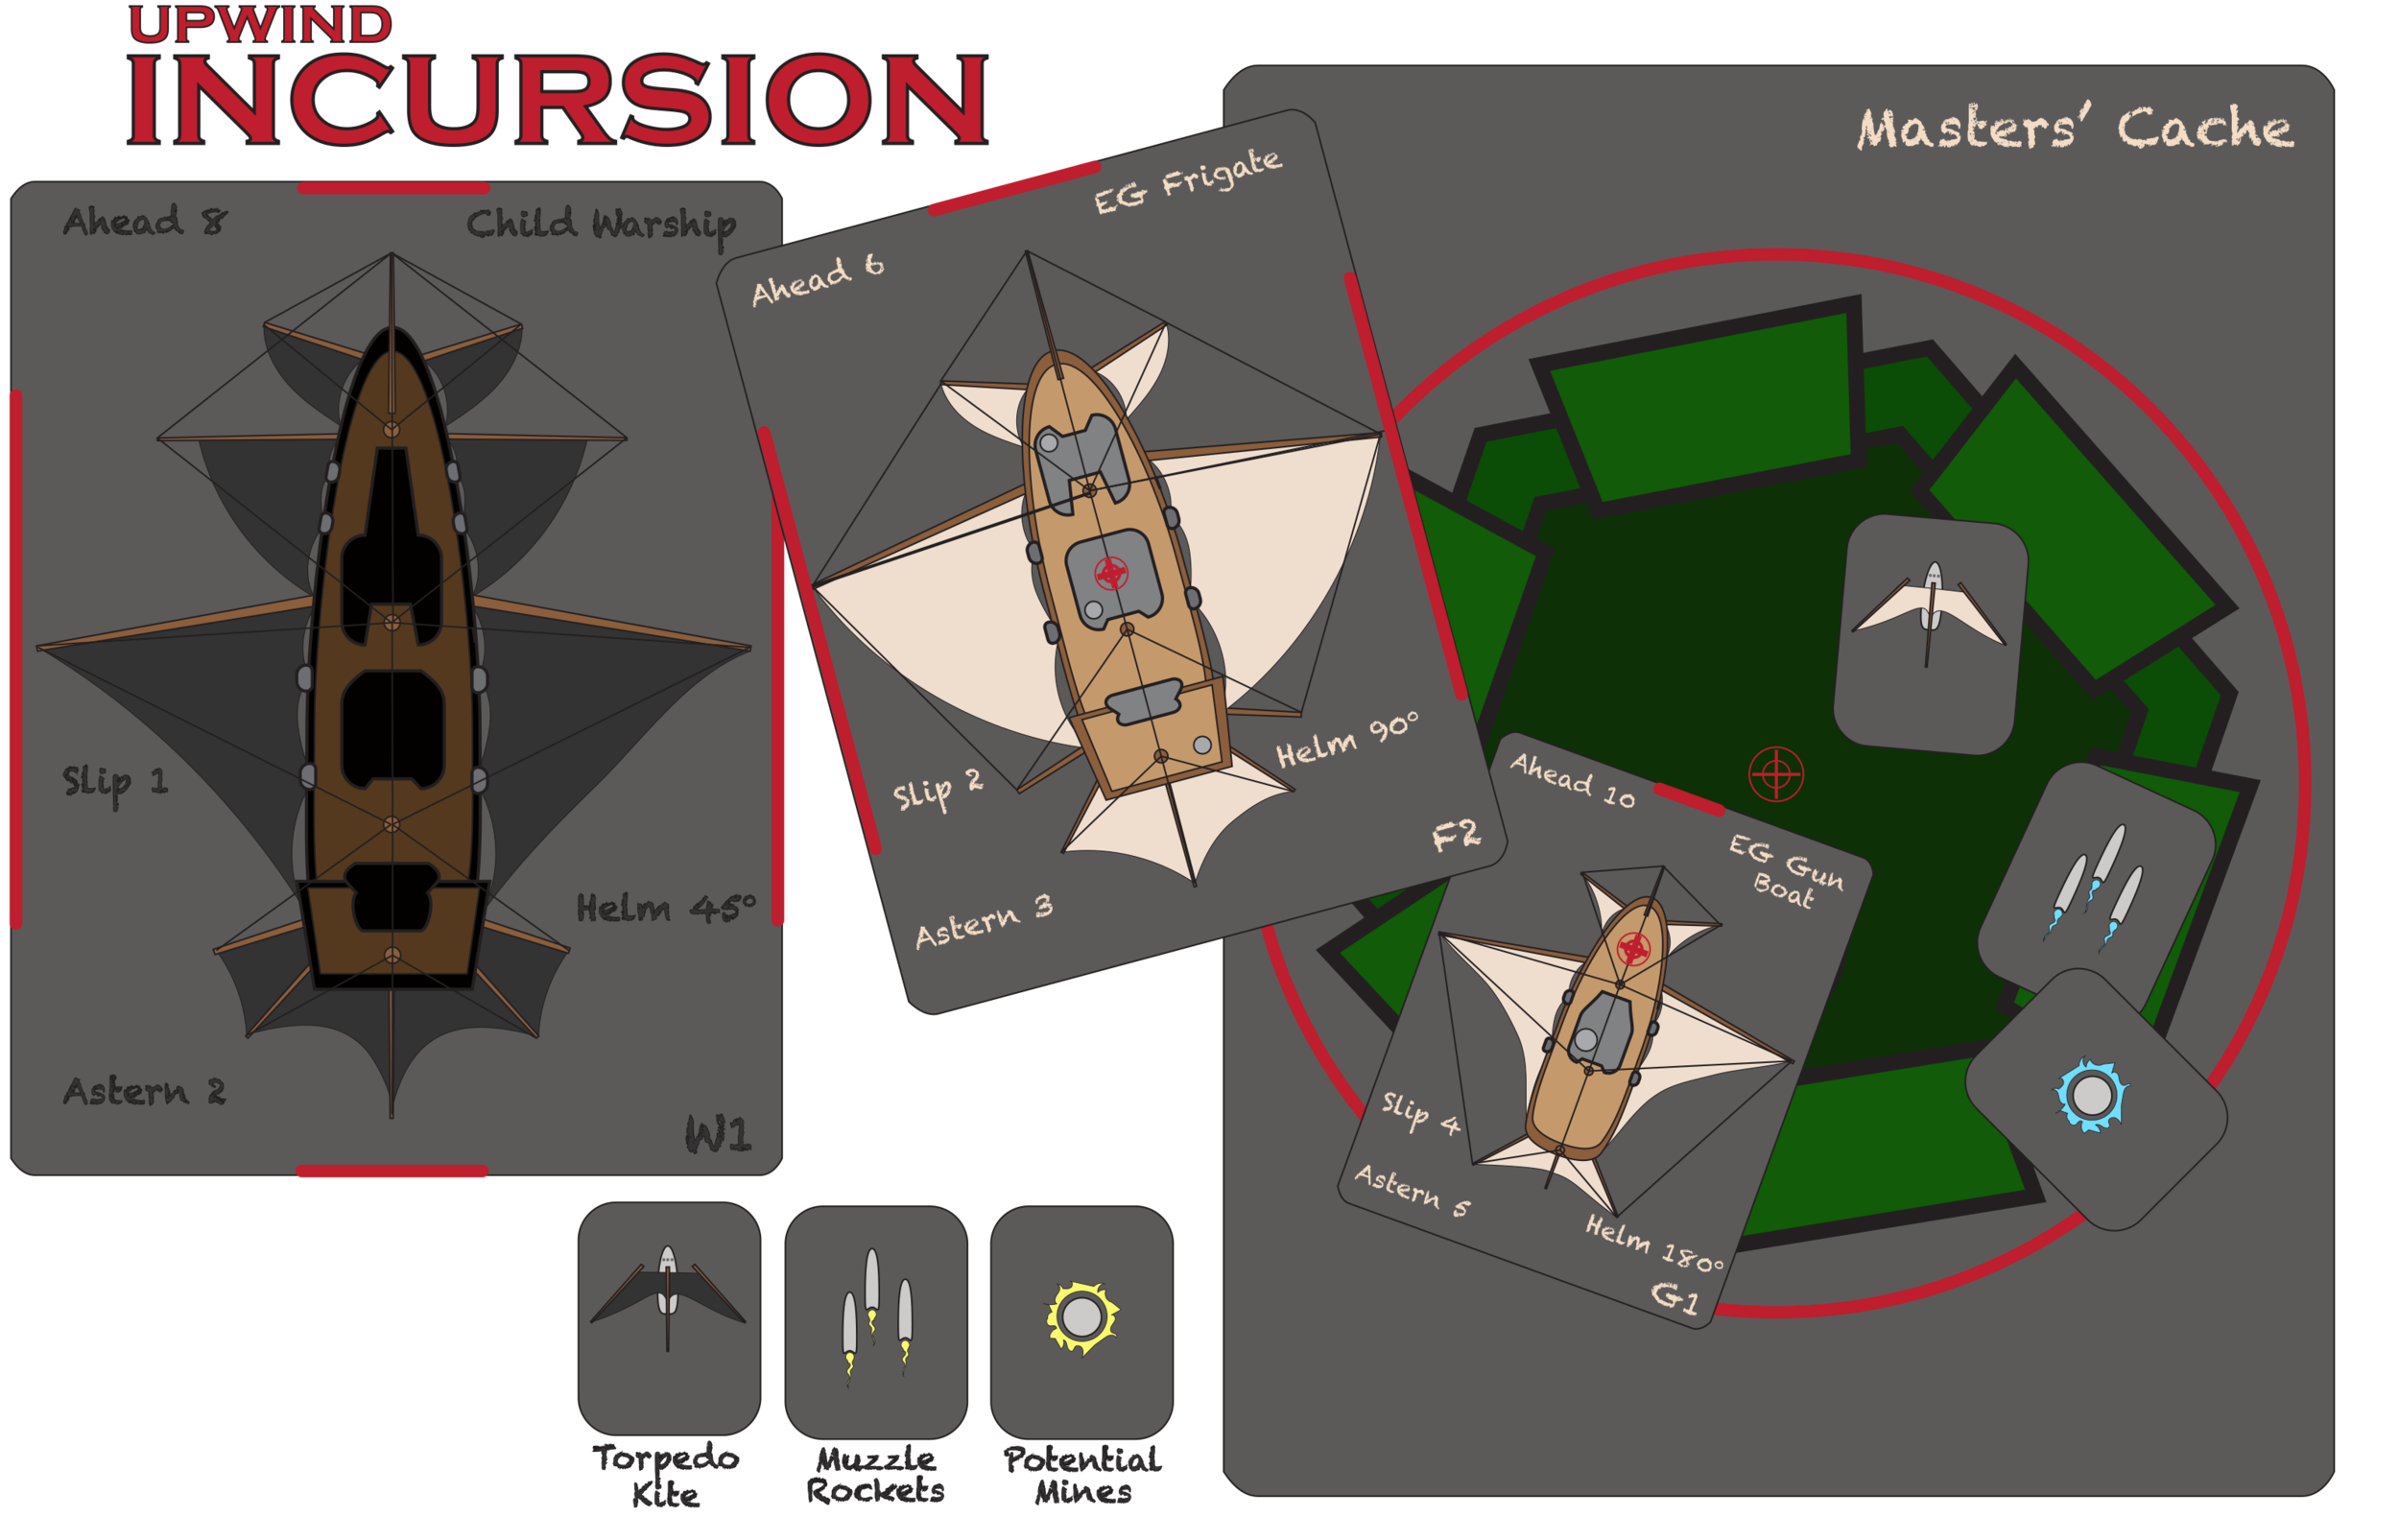 Mock-ups of the tokens we are using for playtesting. The final counters will be much prettier.